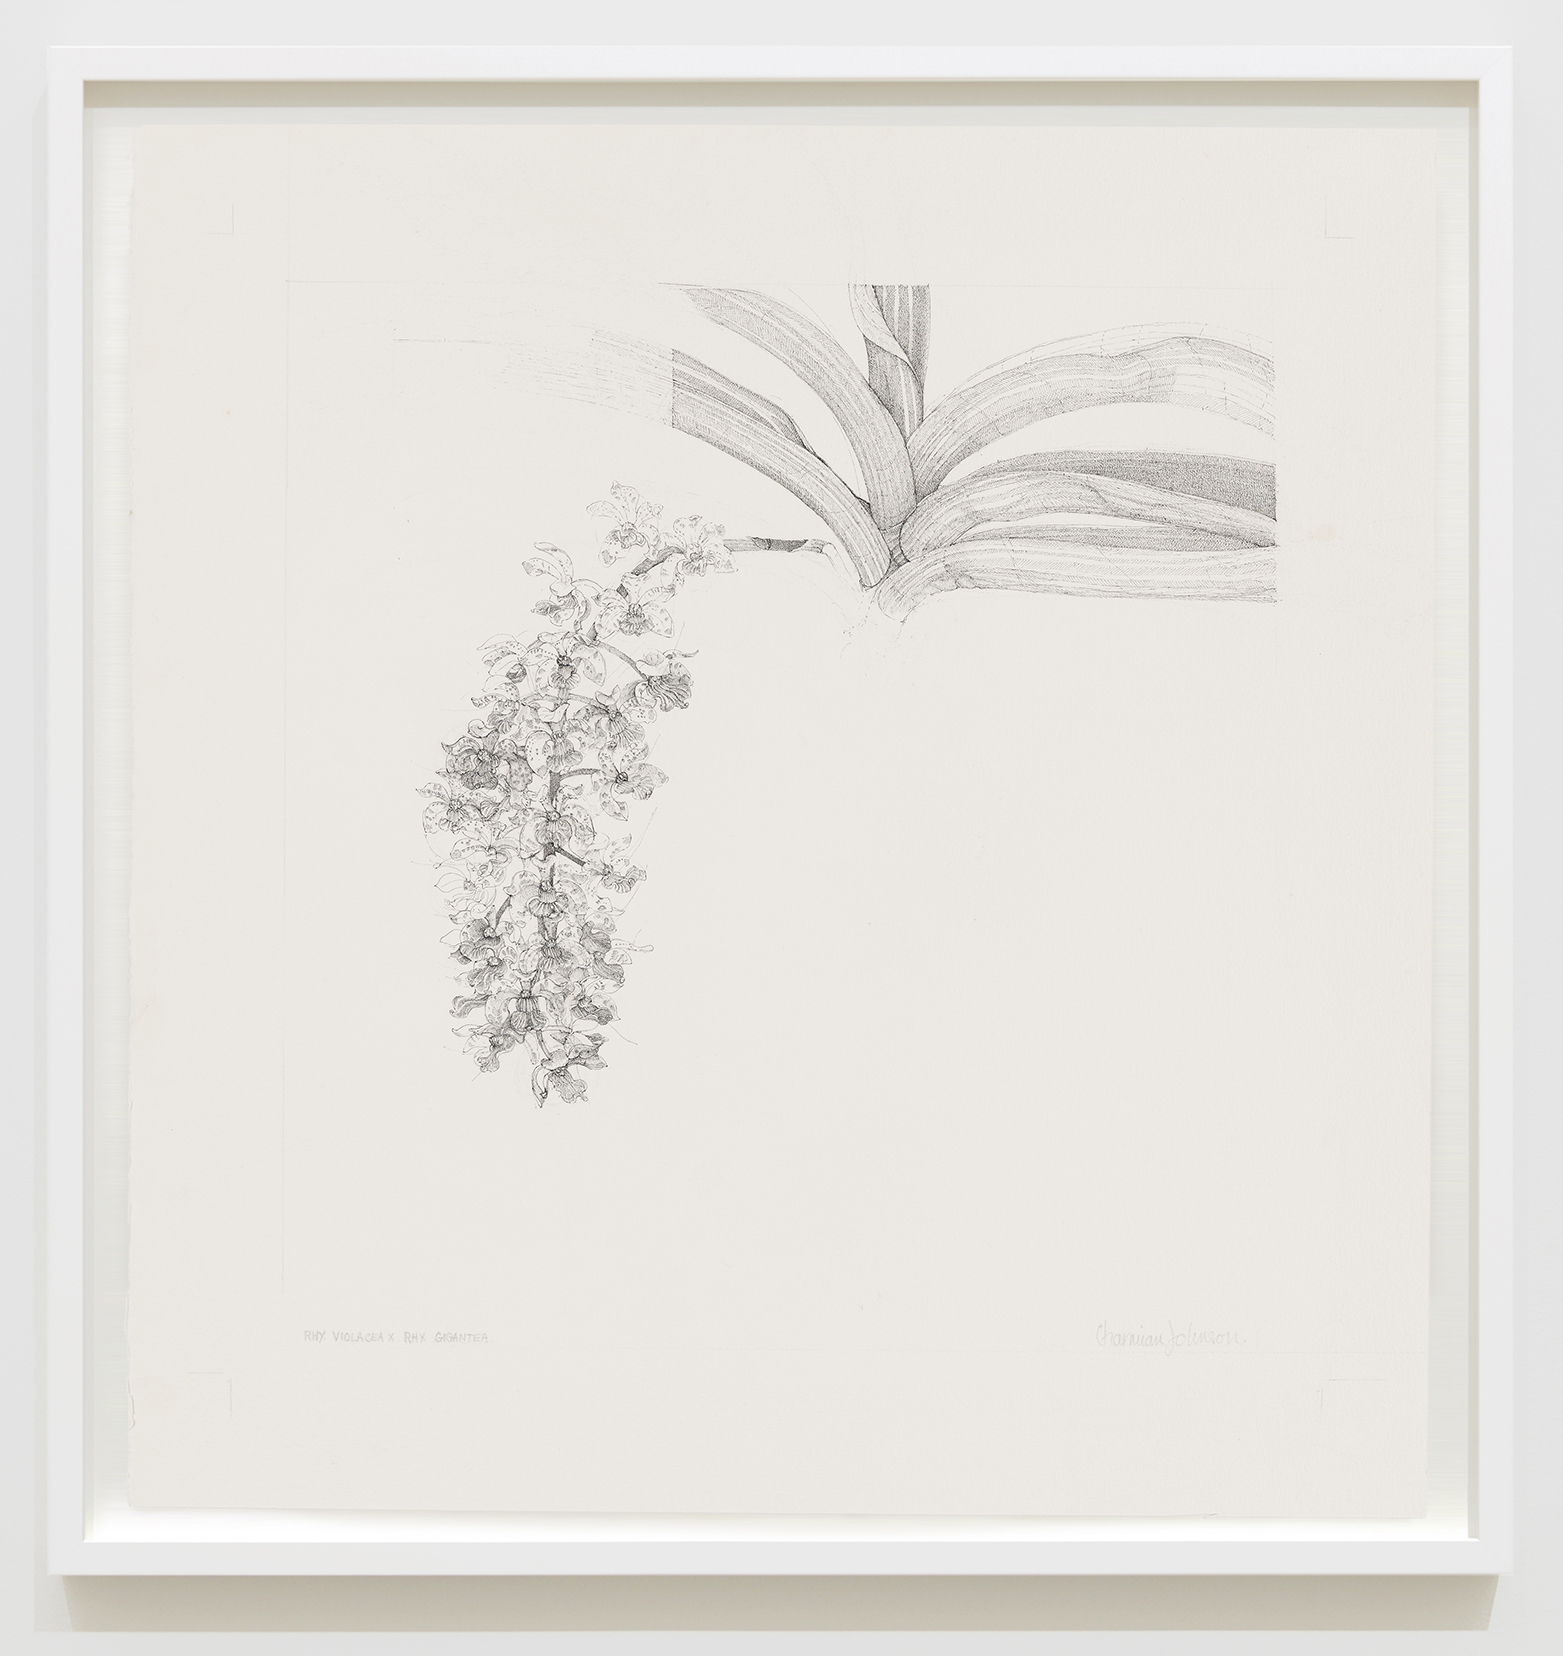 Charmian Johnson, Foxtail Orchid: Rhyncostus Violacea X Rhyncostus Gigantea, 1987, ink and graphite on paper, 27 x 26 in. (67 x 65 cm) by